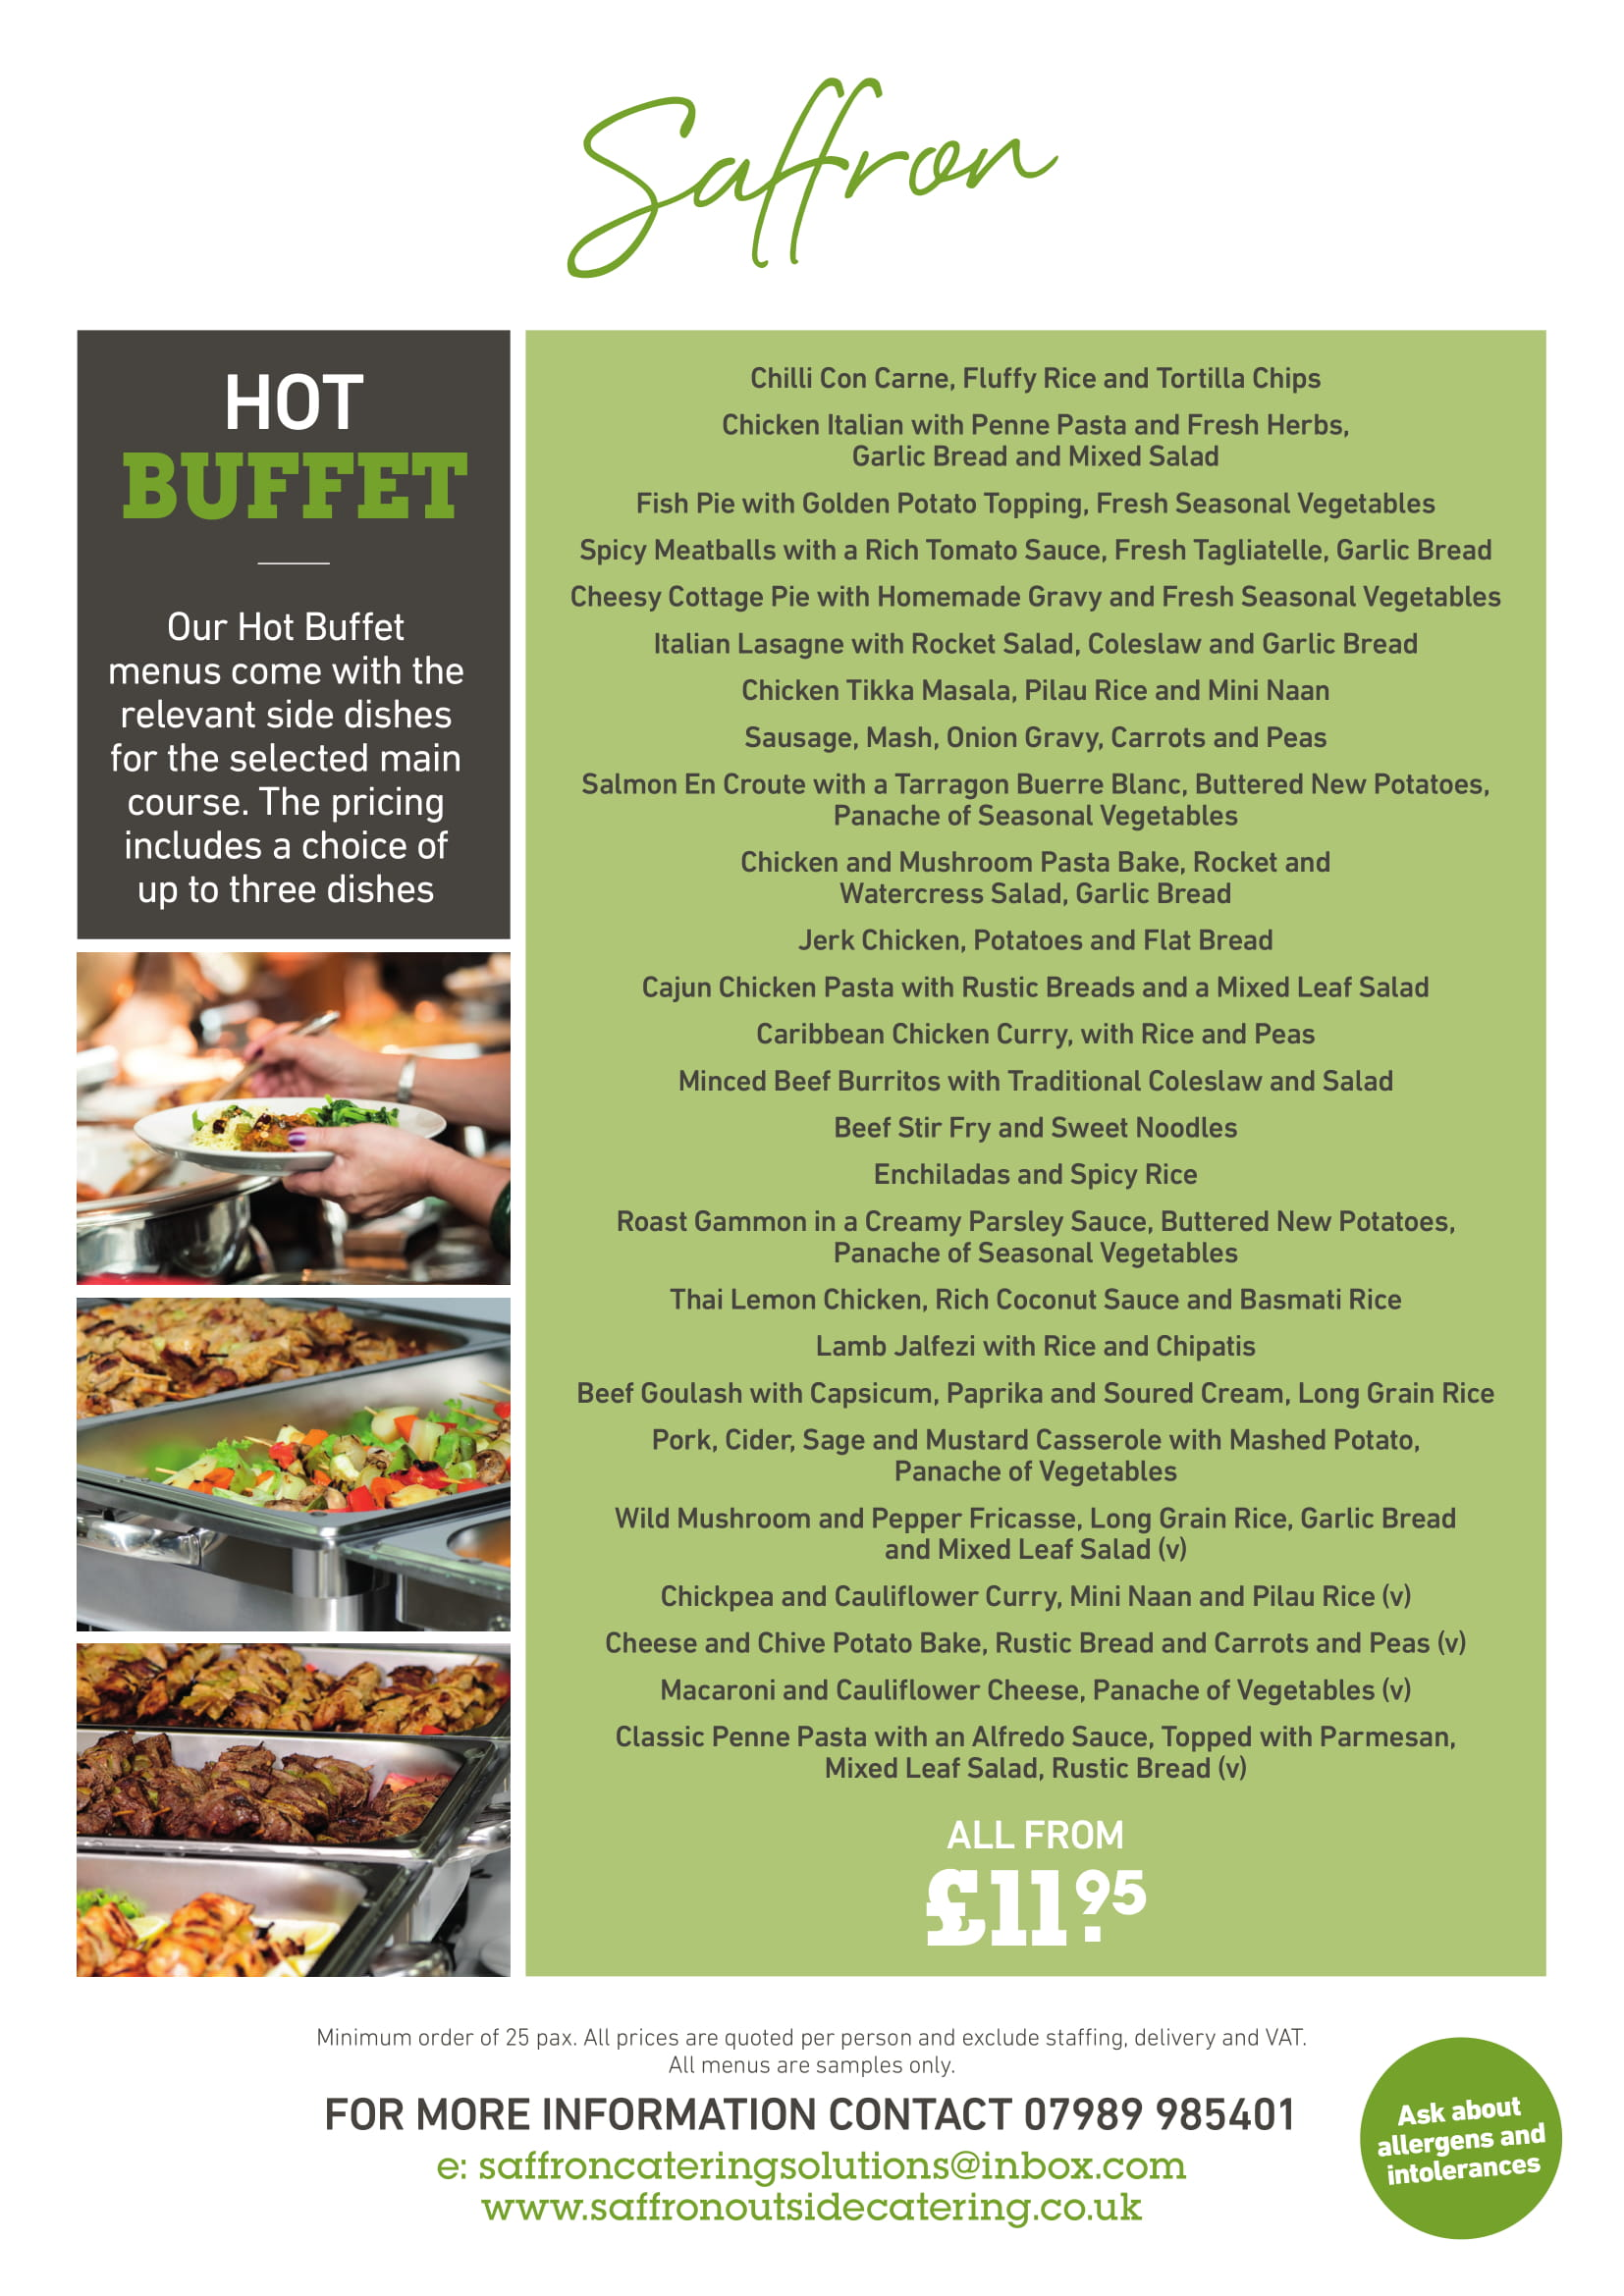 HOT BUFFET 1 - Hot Buffet Menu